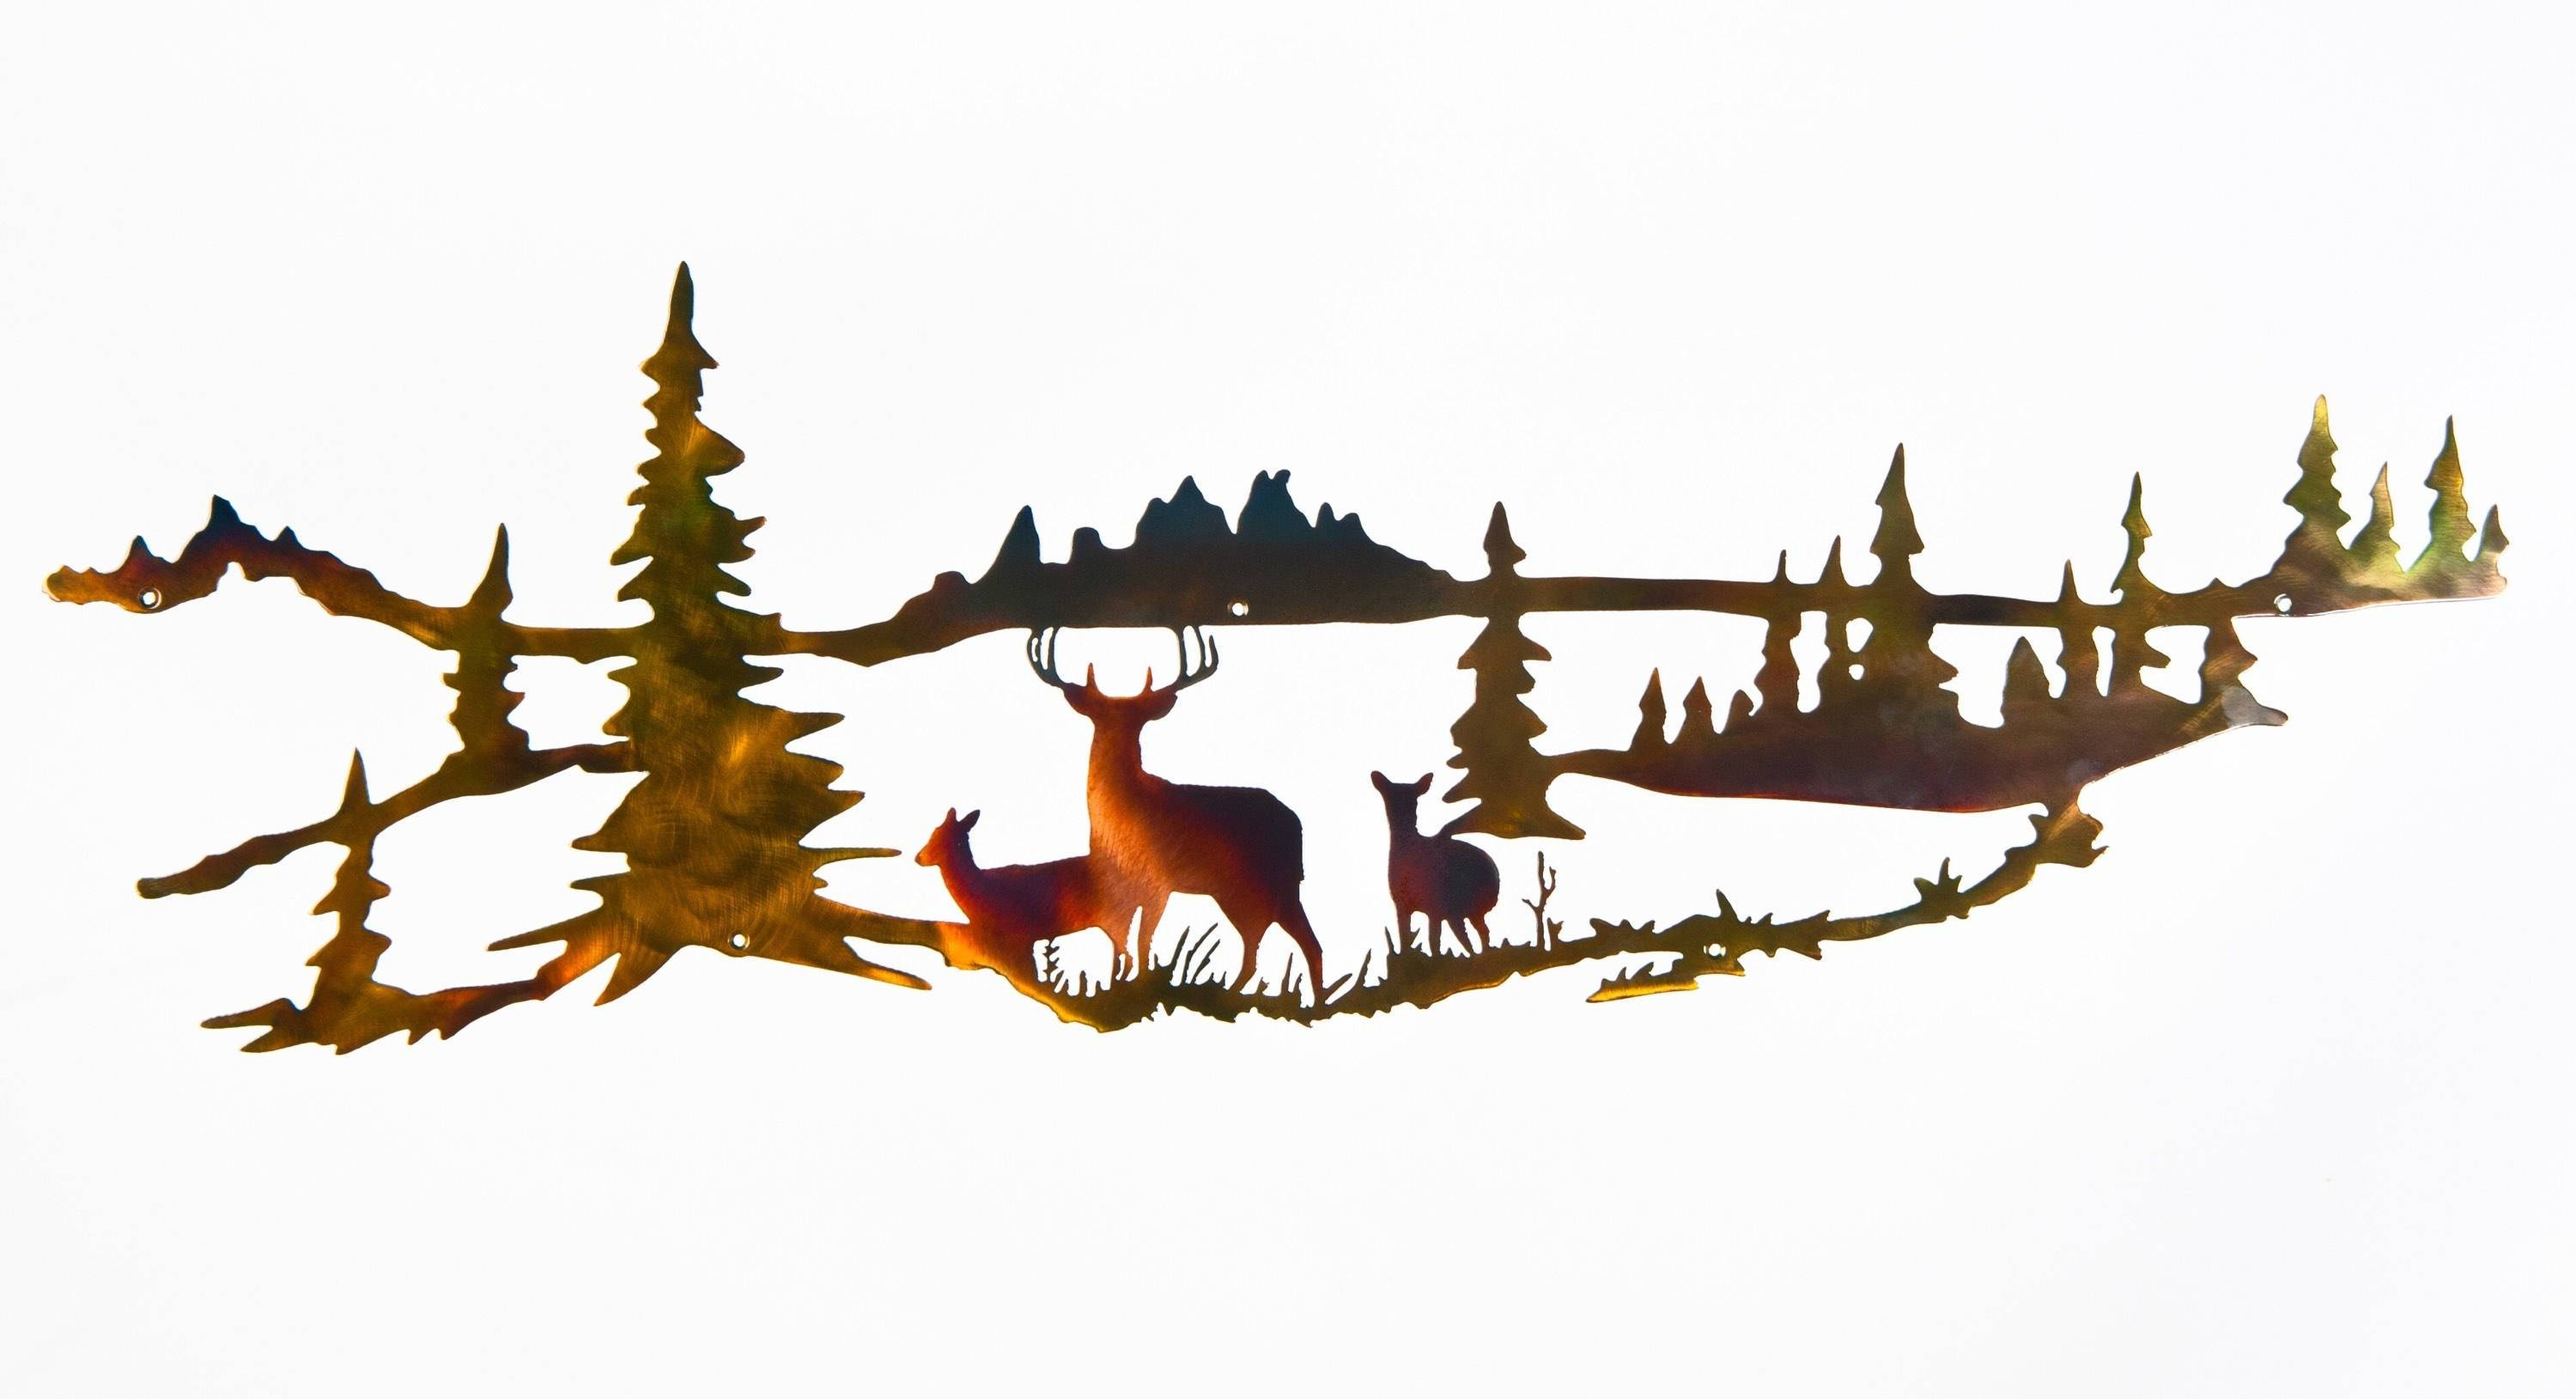 Whitetail Buck And Doe Wildlife Indoor & Outdoor Metal Wall Art Within Current Wildlife Metal Wall Art (View 11 of 20)